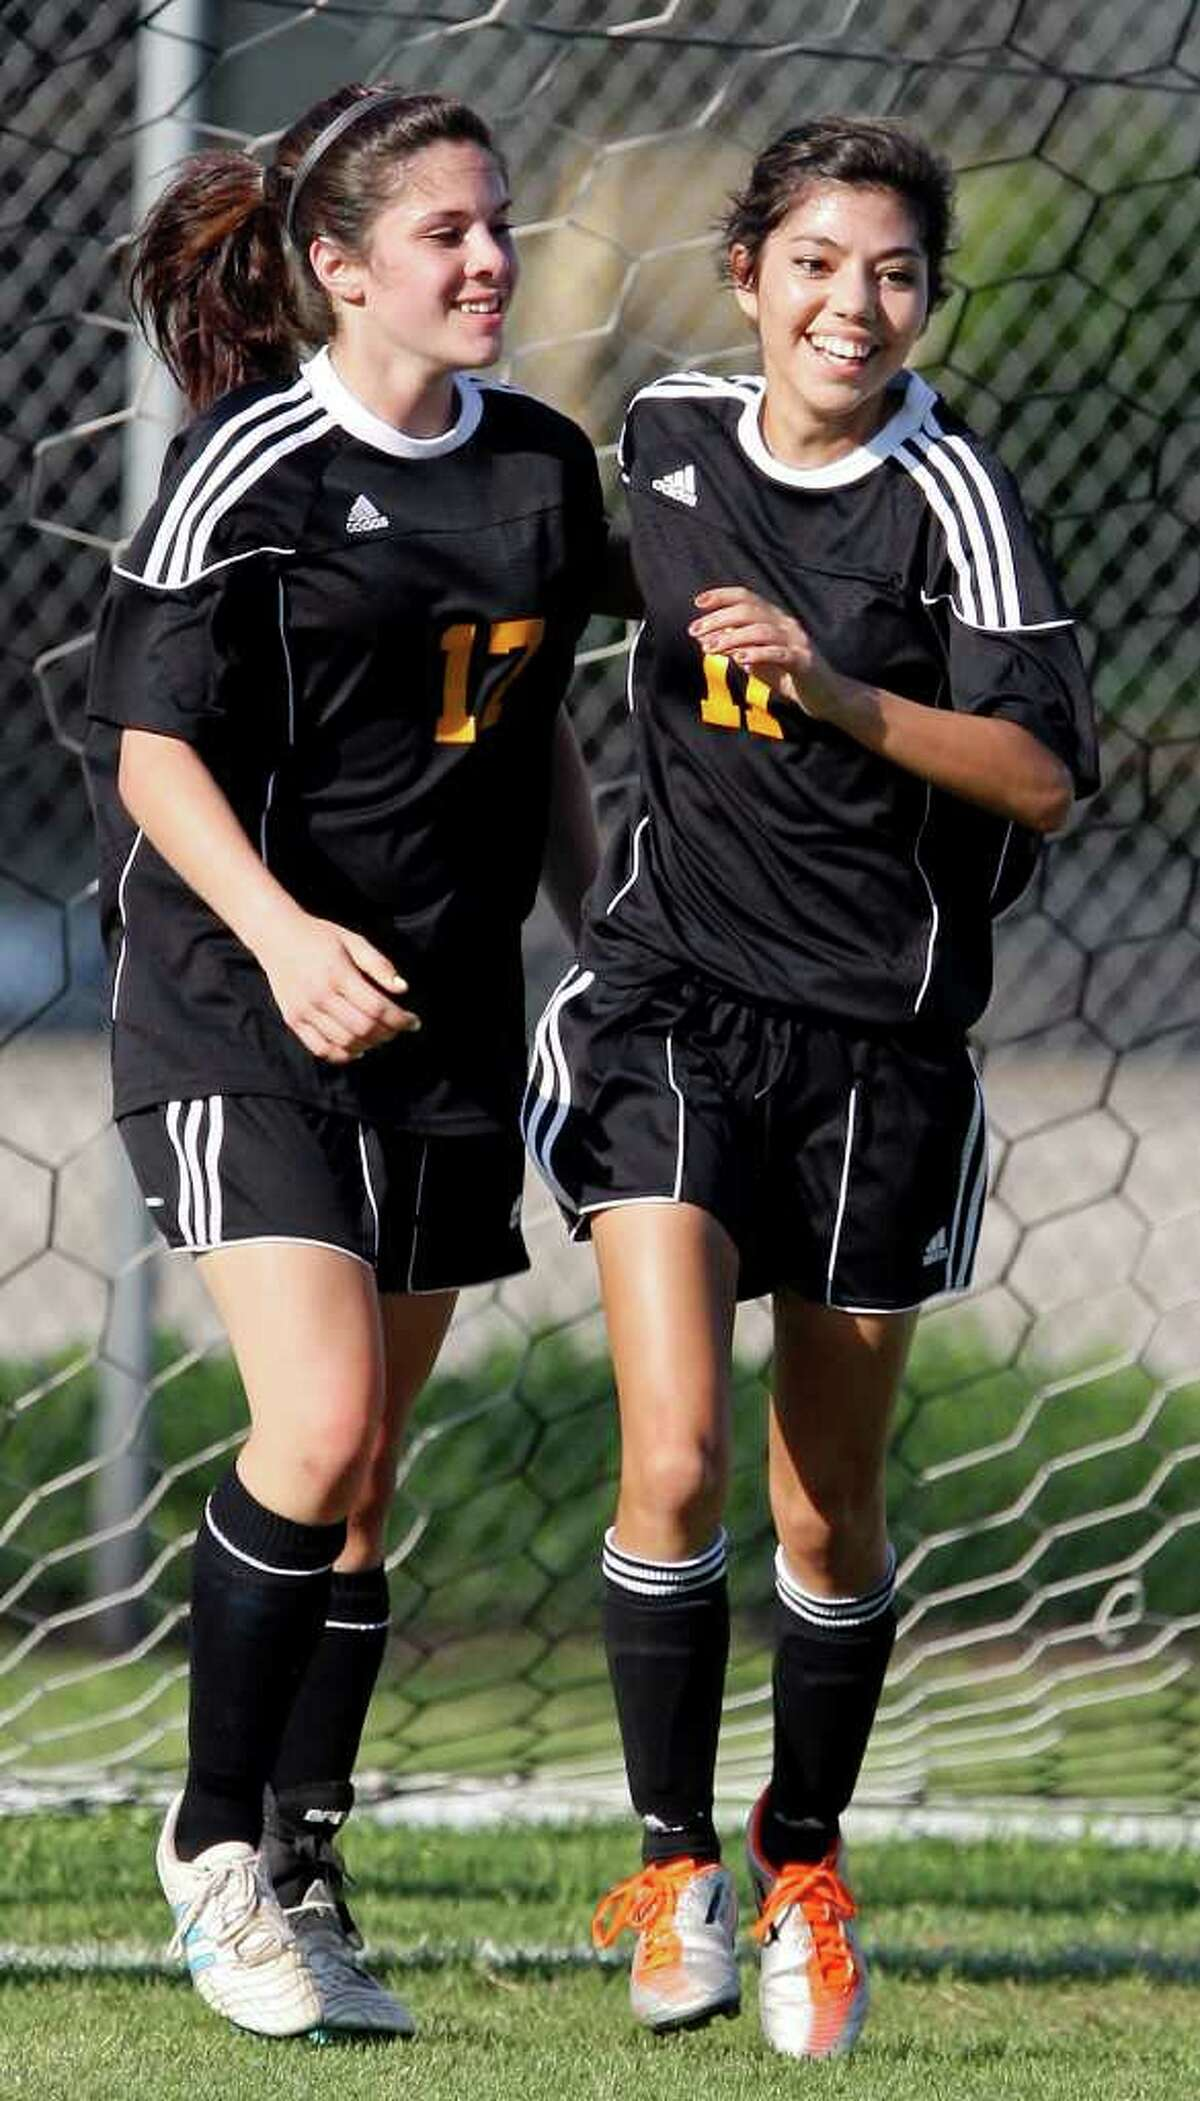 Brennan's Elexandra Lombrado (left) celebrates with teammate Brennan's Madelyn Ruiz after Ruiz scored a goal against Burbank during first half action of their Class 4A first round playoff game Friday March 30, 2012 at SAISD Sports Complex.